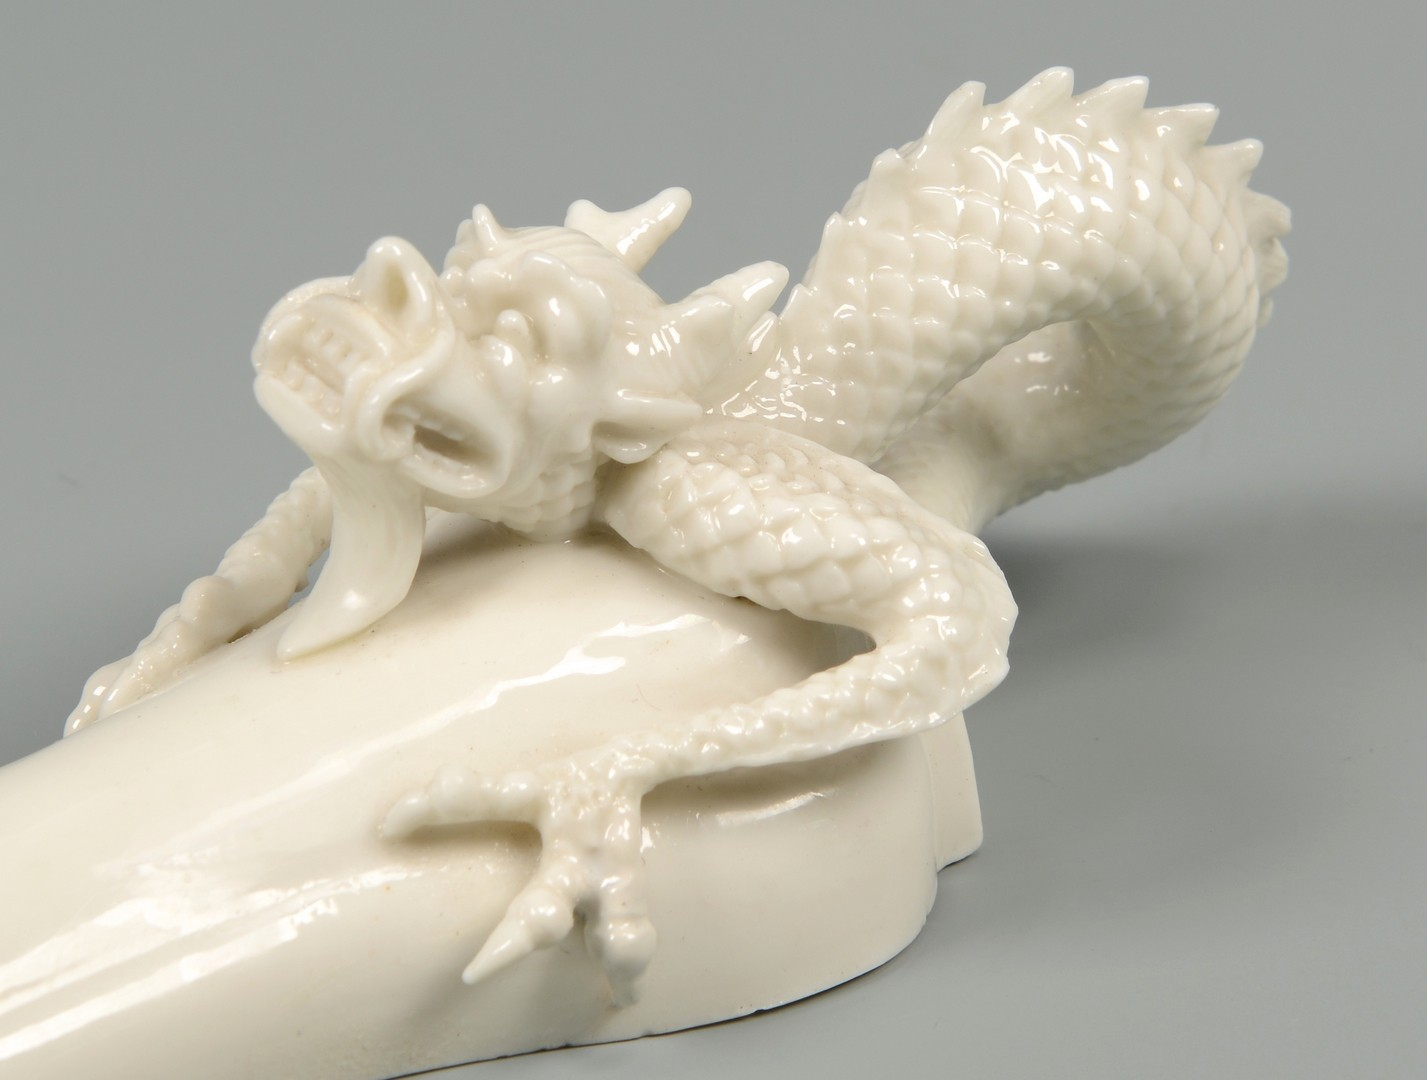 Lot 3594254: Meissen & Royal Worcester Dragon Wall Pockets